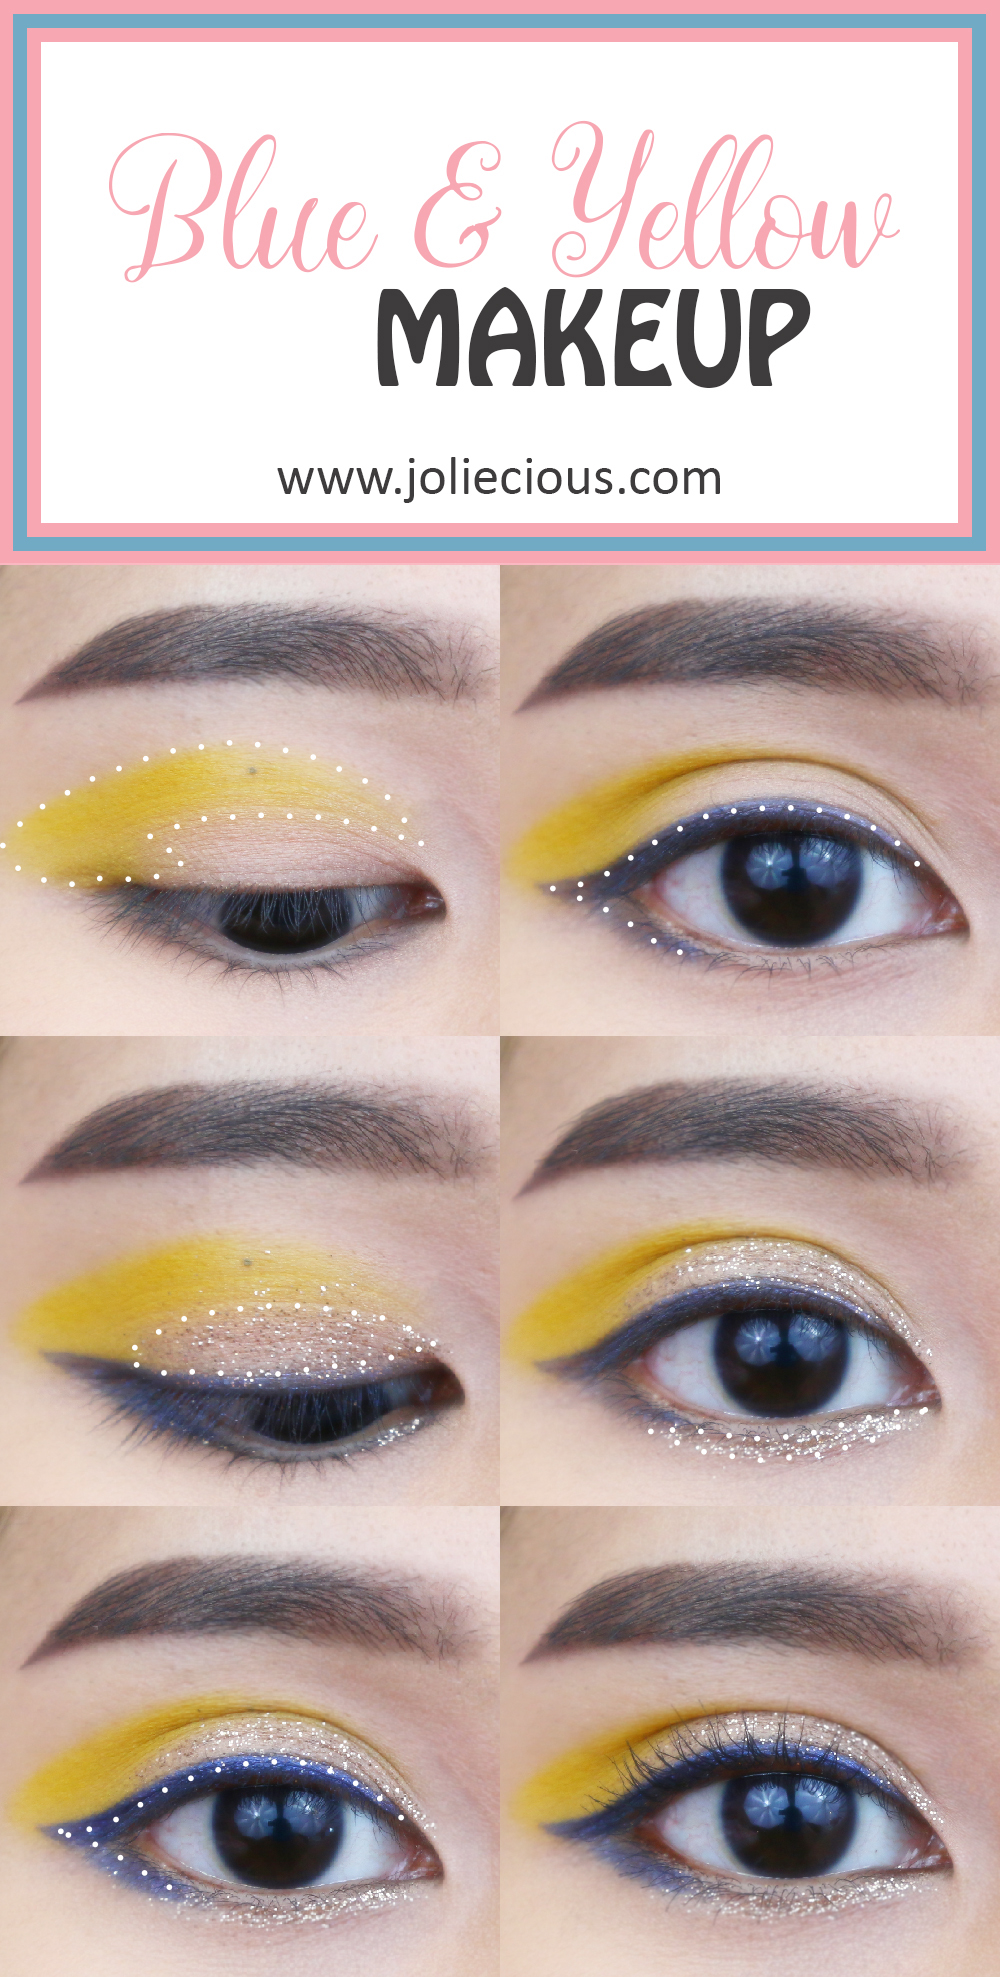 Bold color makeup tutorial   Blue and yellow makeup   Easy makeup tutorial for beginner   BH Cosmetics Take Me Back to Brazil palette